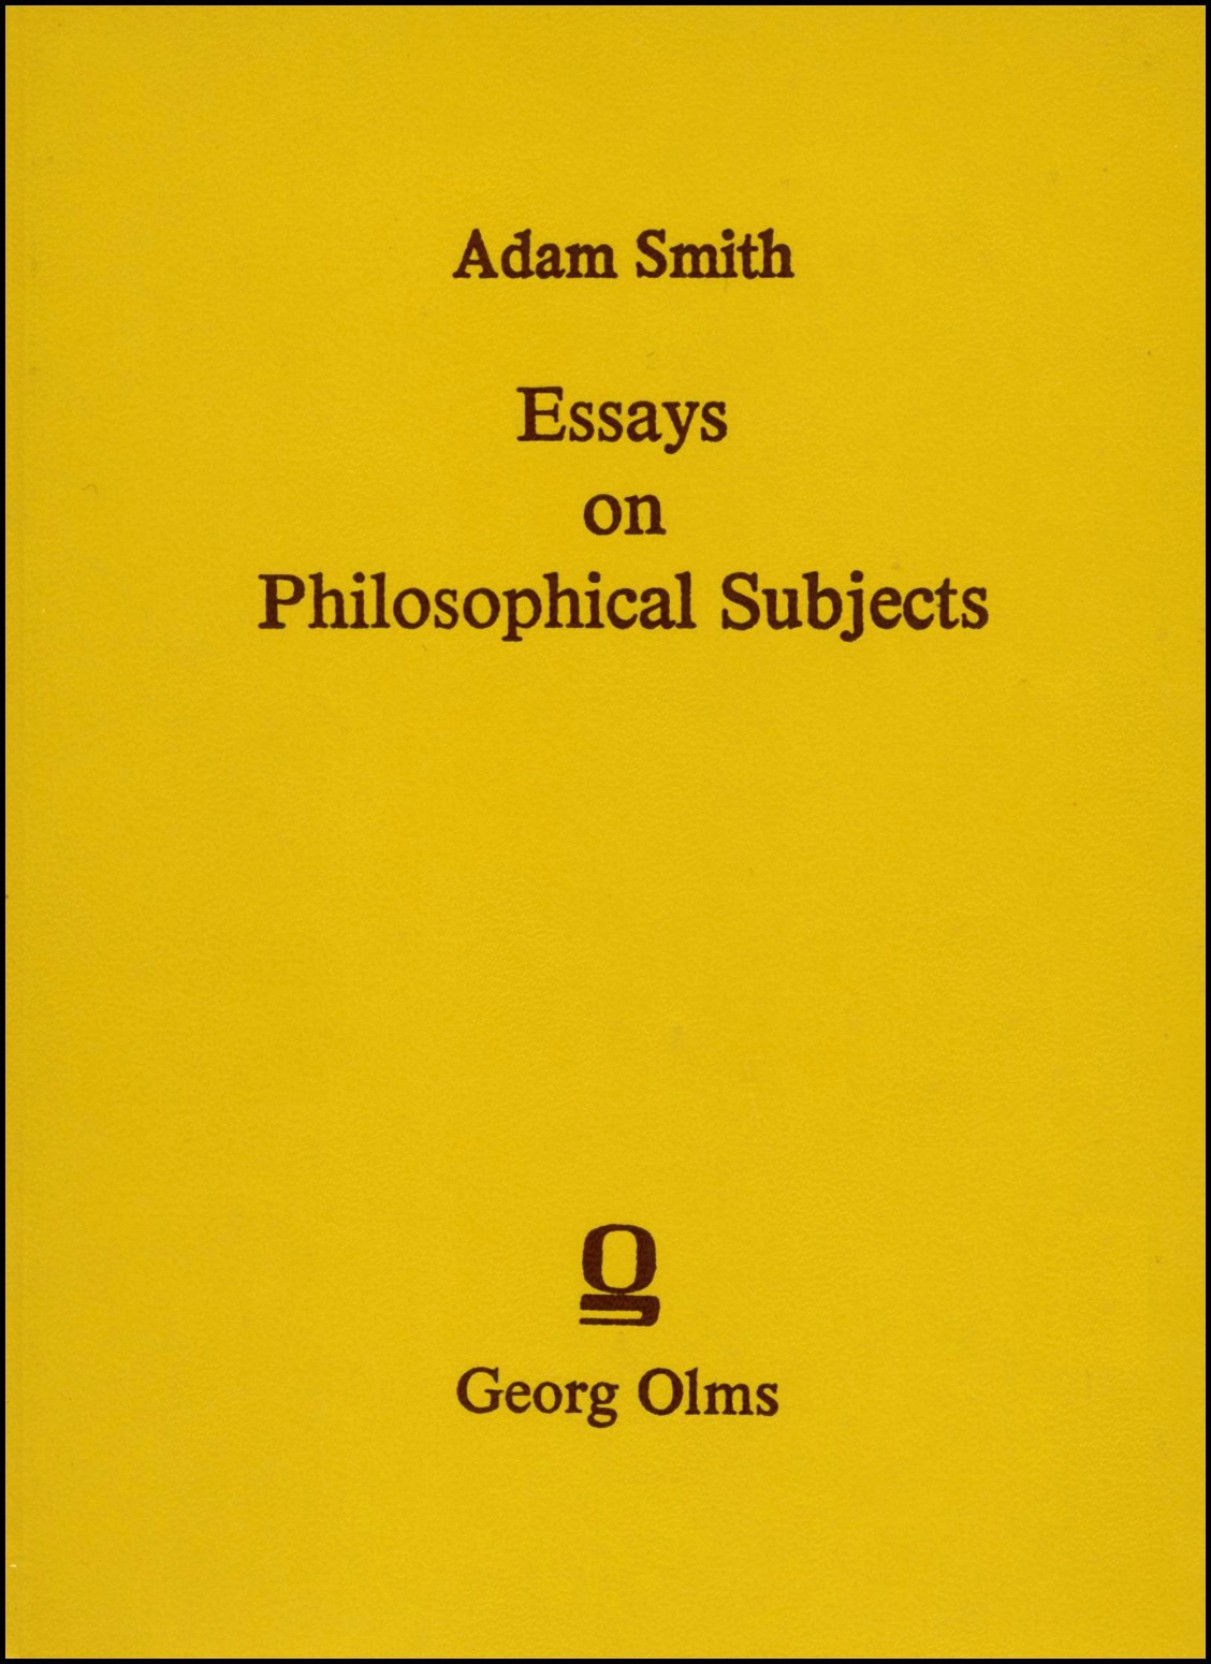 009 Essays On Philosophical Subjects Essay Example To Which Is Prefixed An Account Original Best Smith Pdf Full